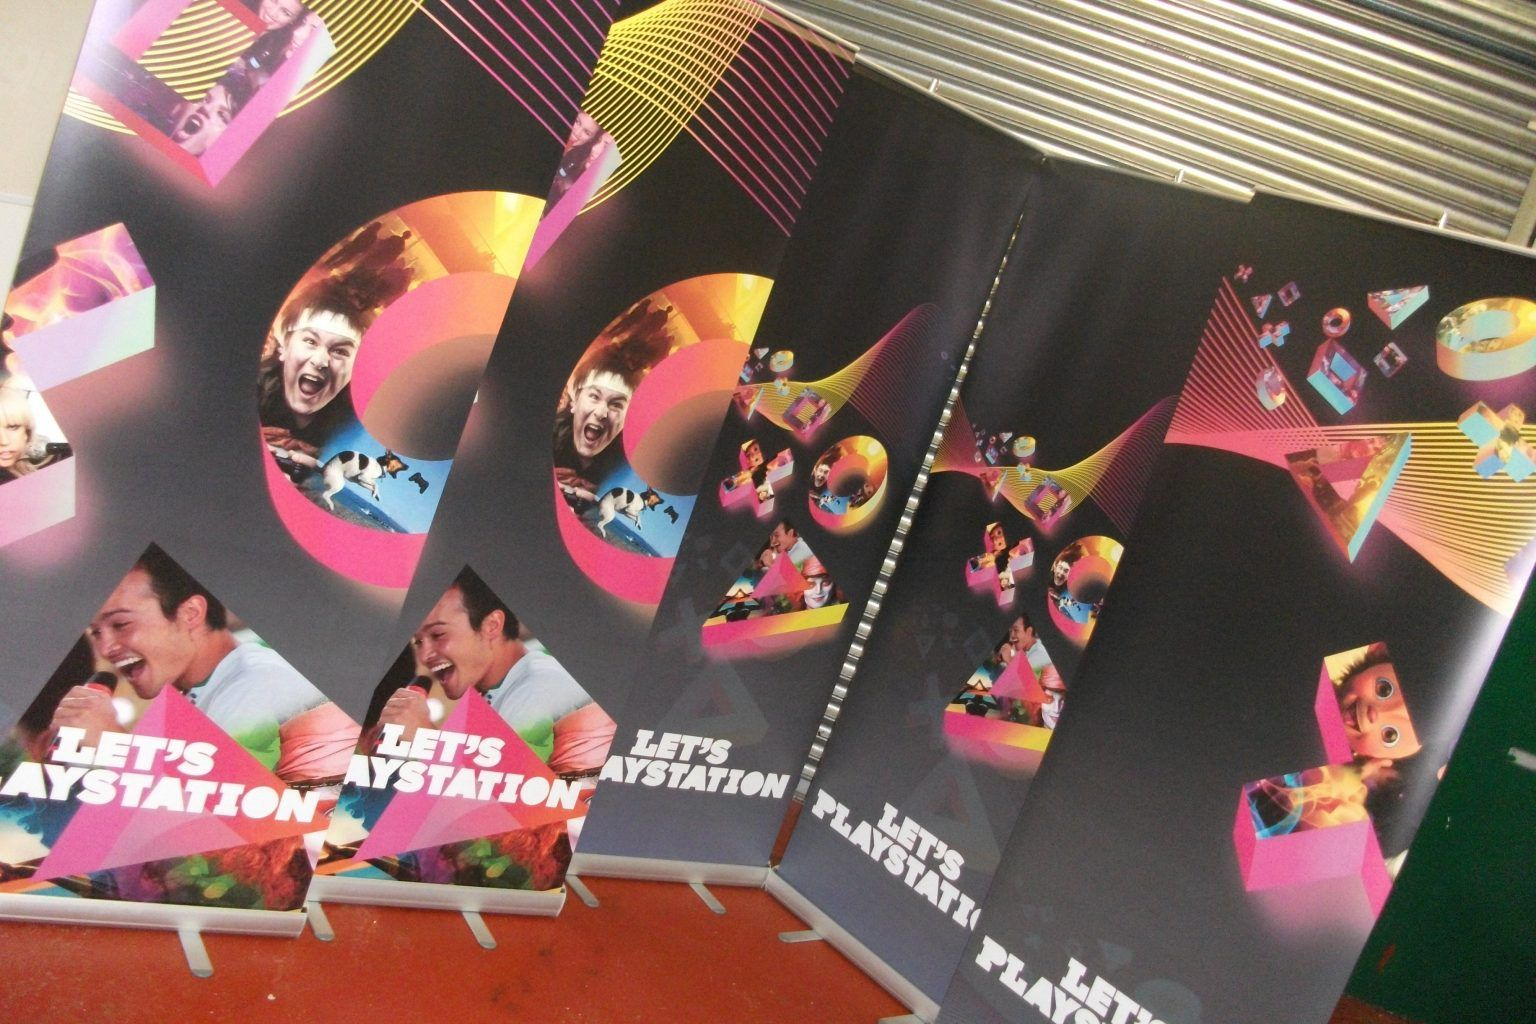 Playstation Large format printed pop up banners